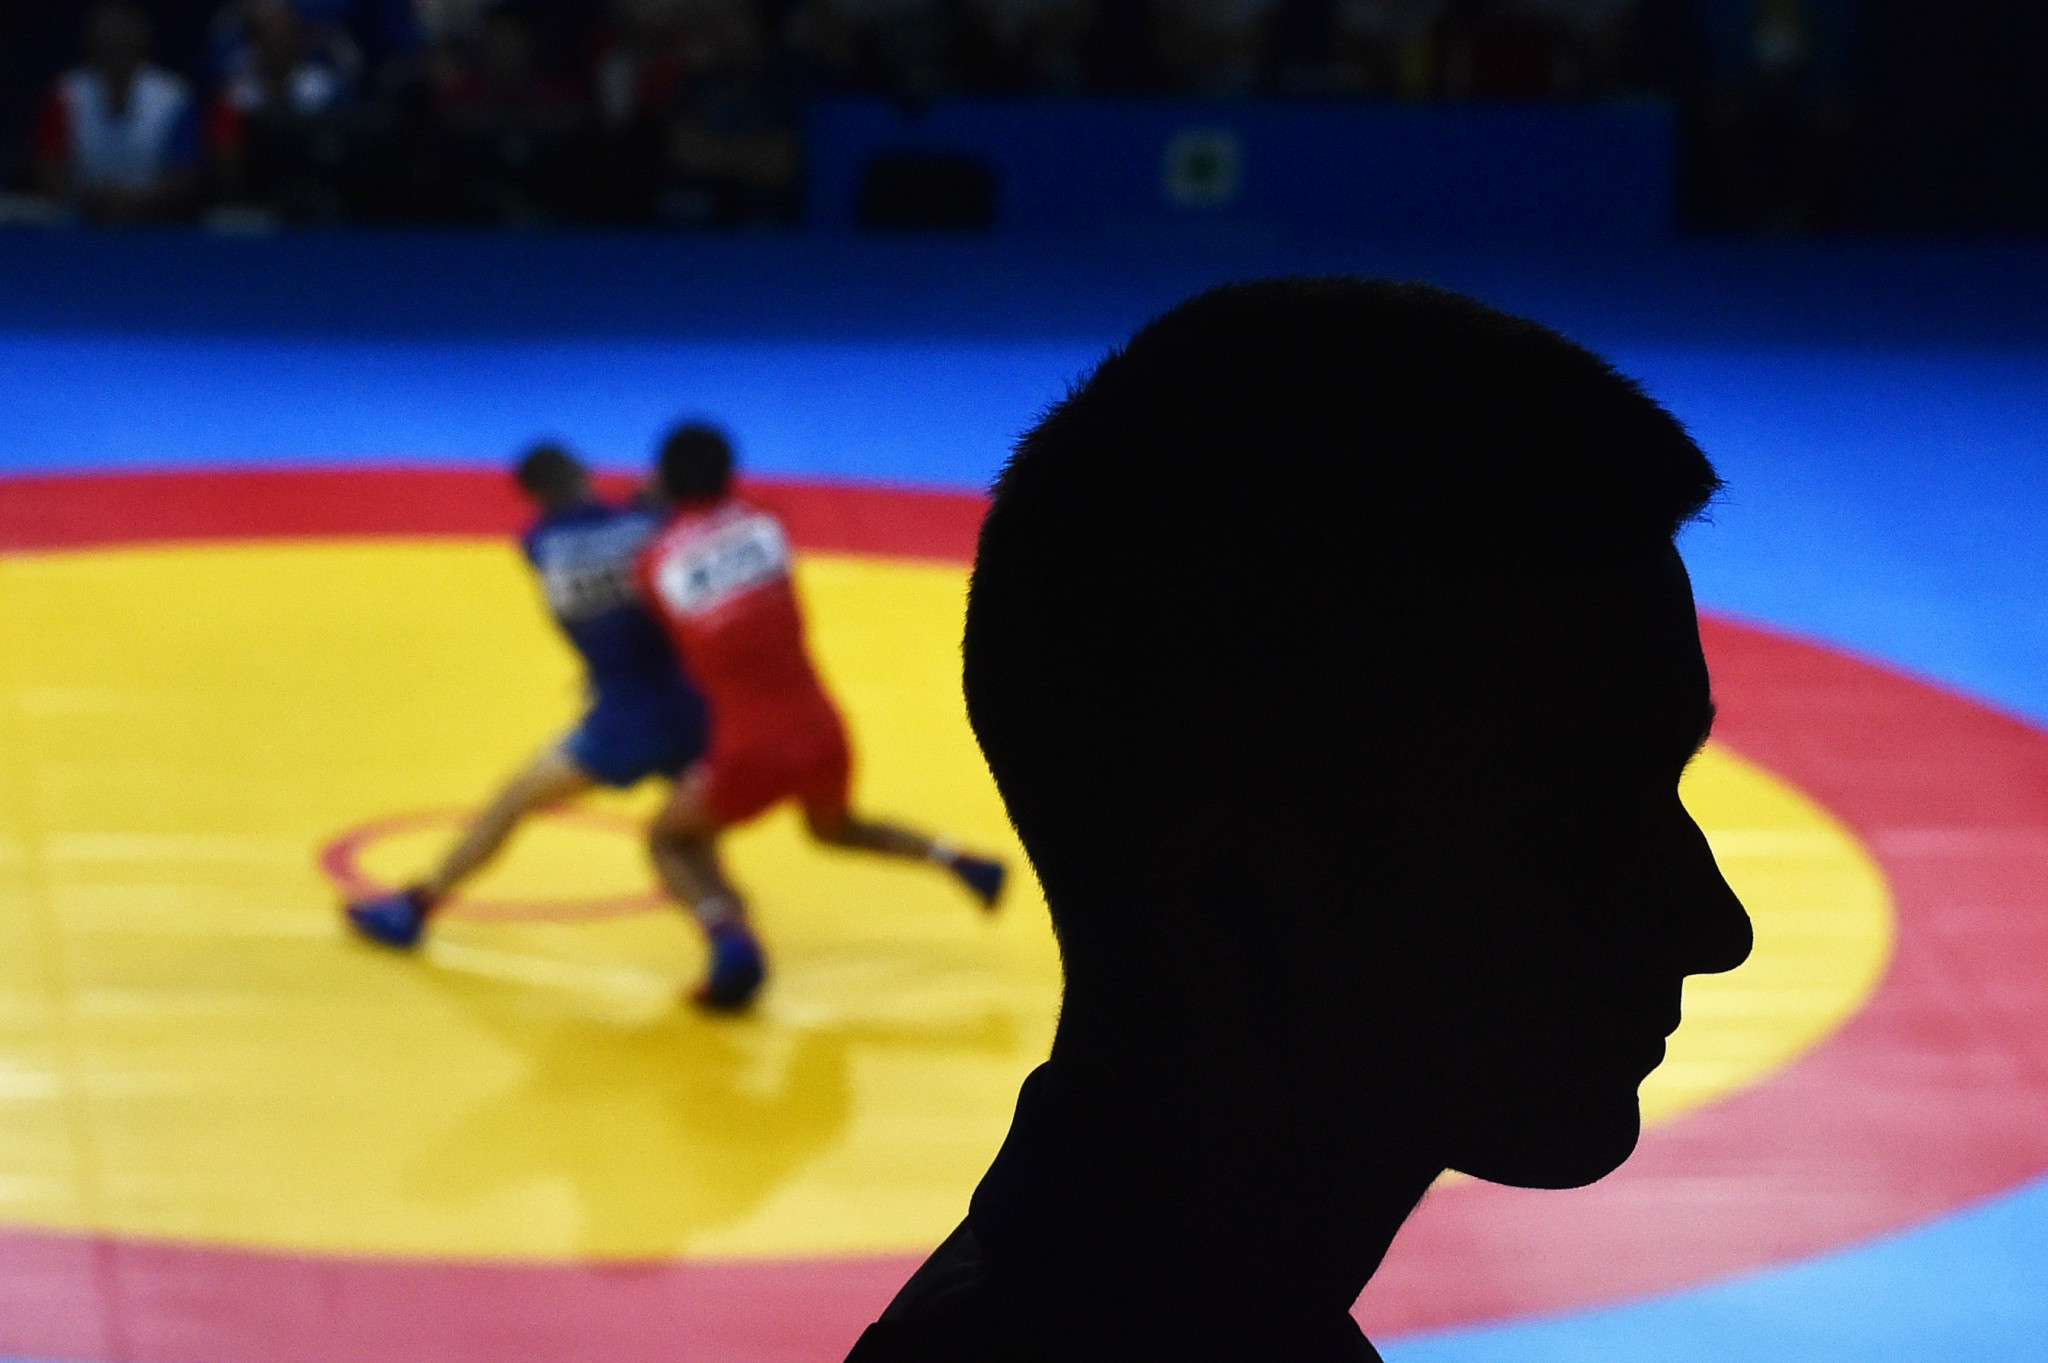 Sambo, combat sambo and women's sambo are all contested at the World Sambo Championships ©Getty Images